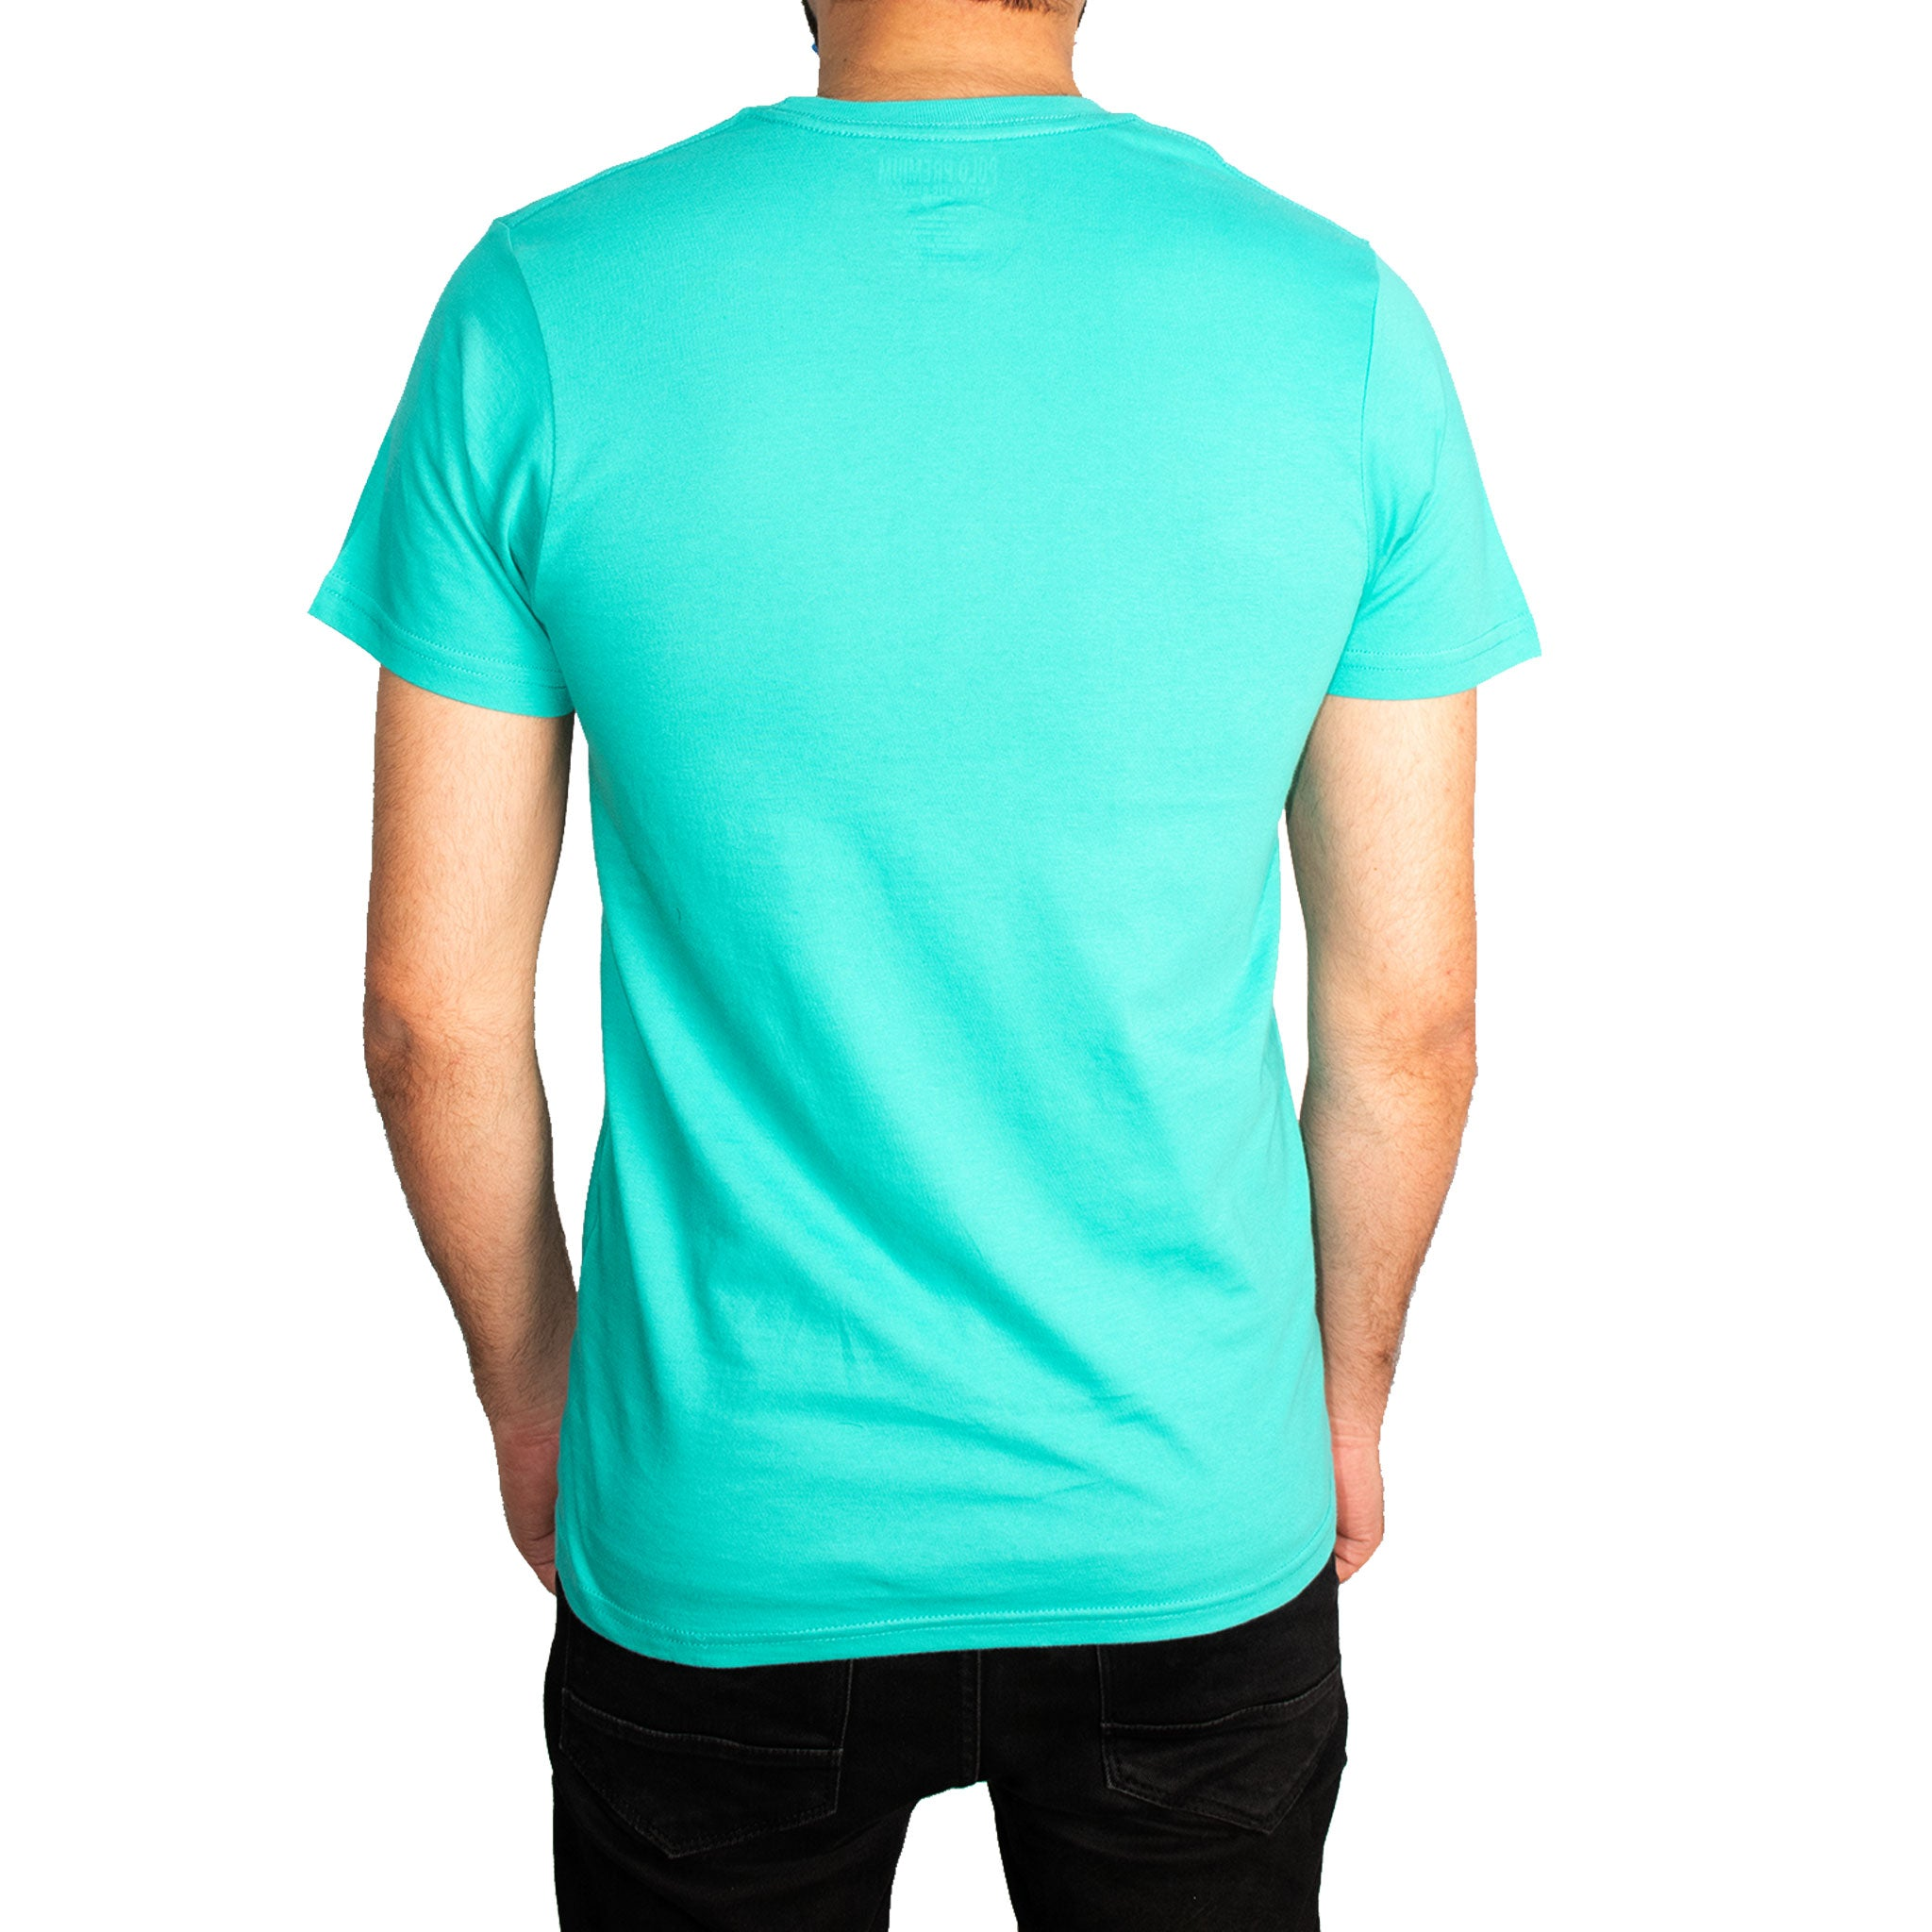 MEN'S S/S GRAPHIC TEE - JADE - Export Mall